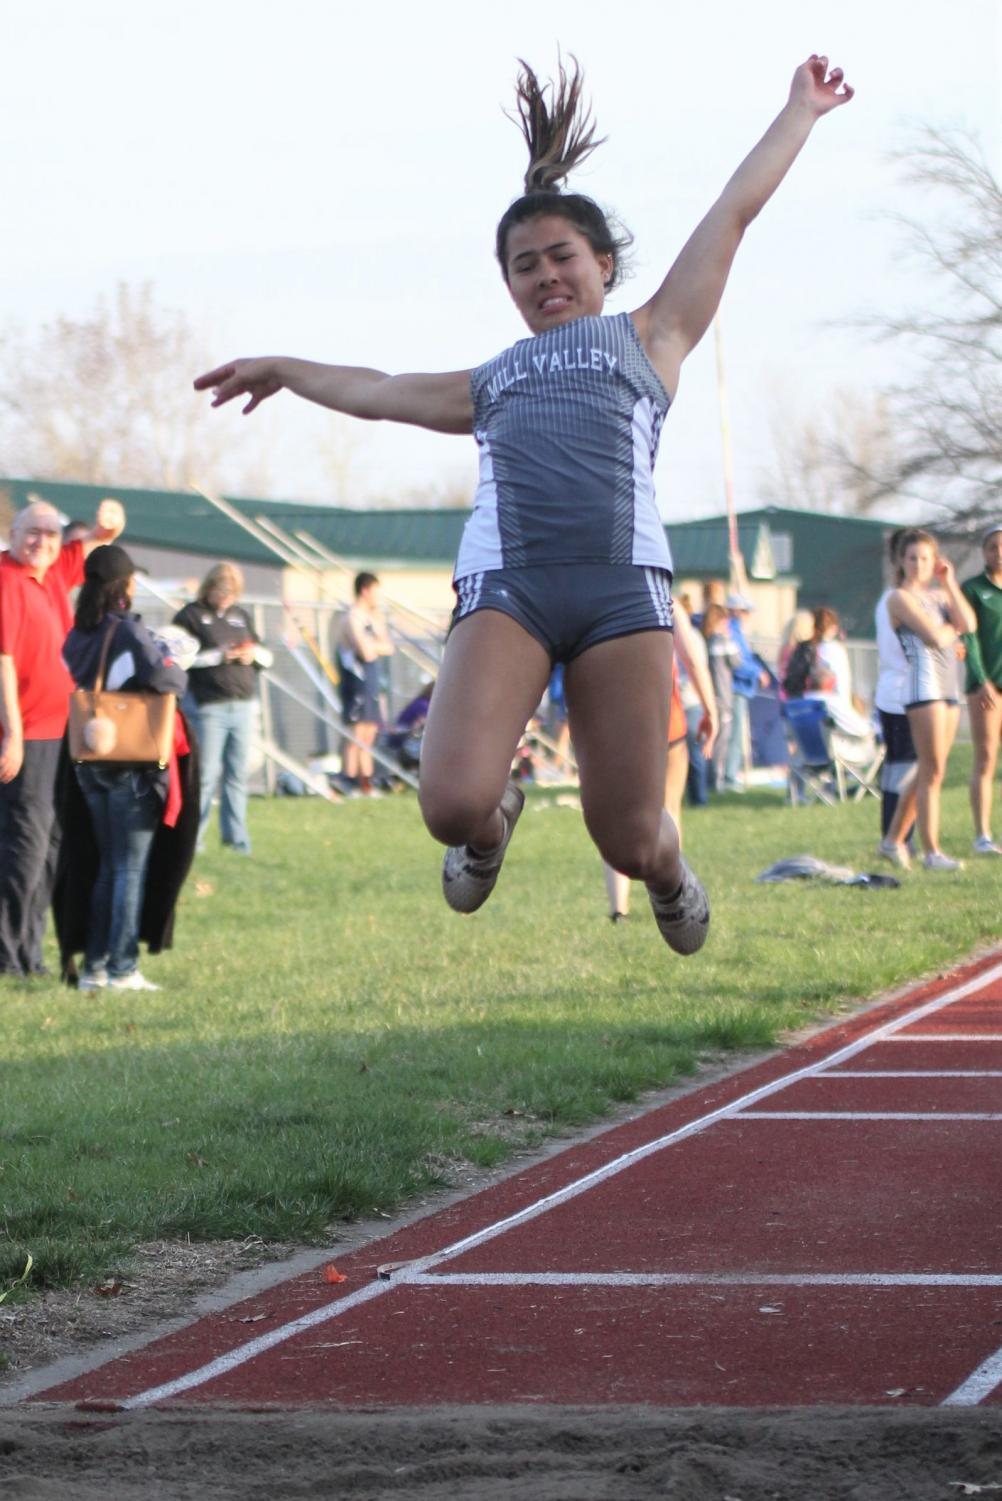 Jumping+high%2C+senior+Mya+Johnston+competes+in+the+long+jump+event.